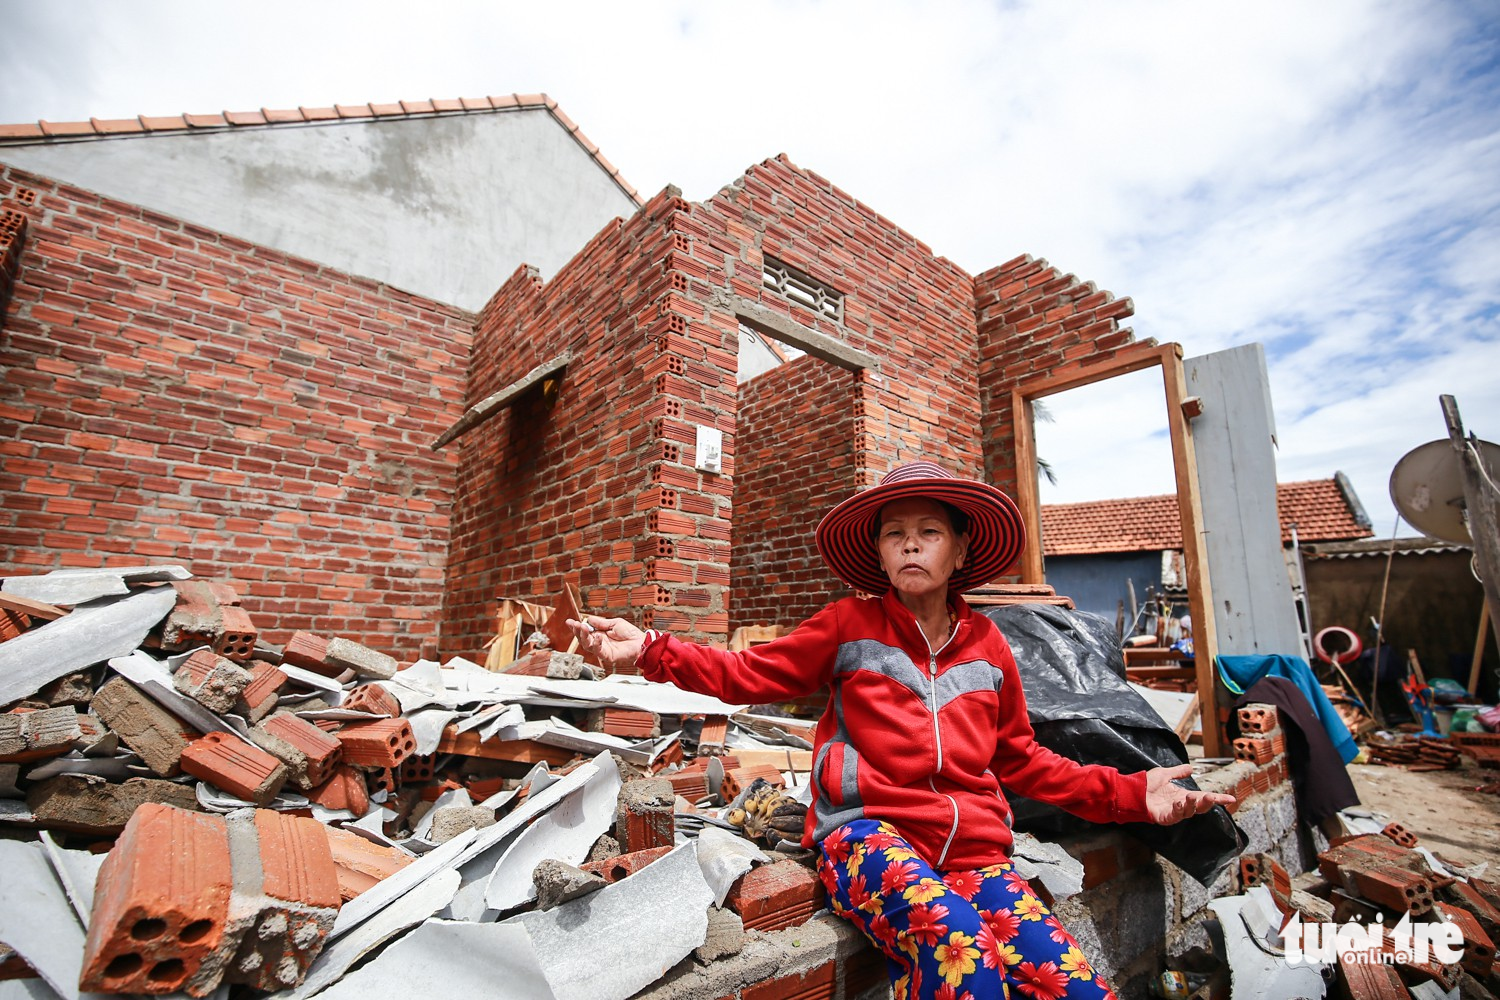 Phan Thi Lac, 63, sits by the debris of her home in Van Phuoc Commune.